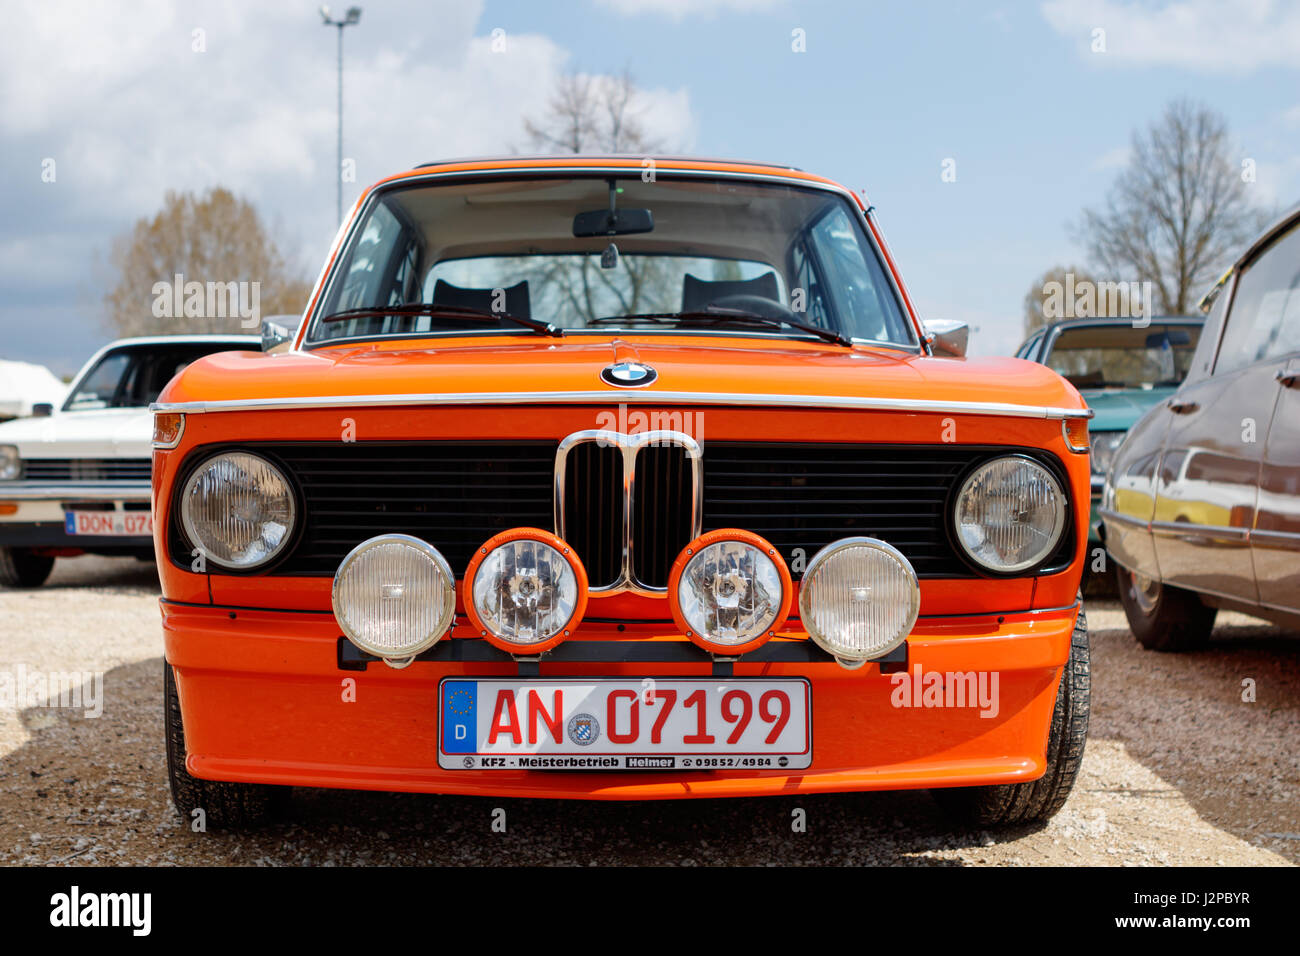 Oldtimer Bmw Stock Photos Amp Oldtimer Bmw Stock Images Alamy